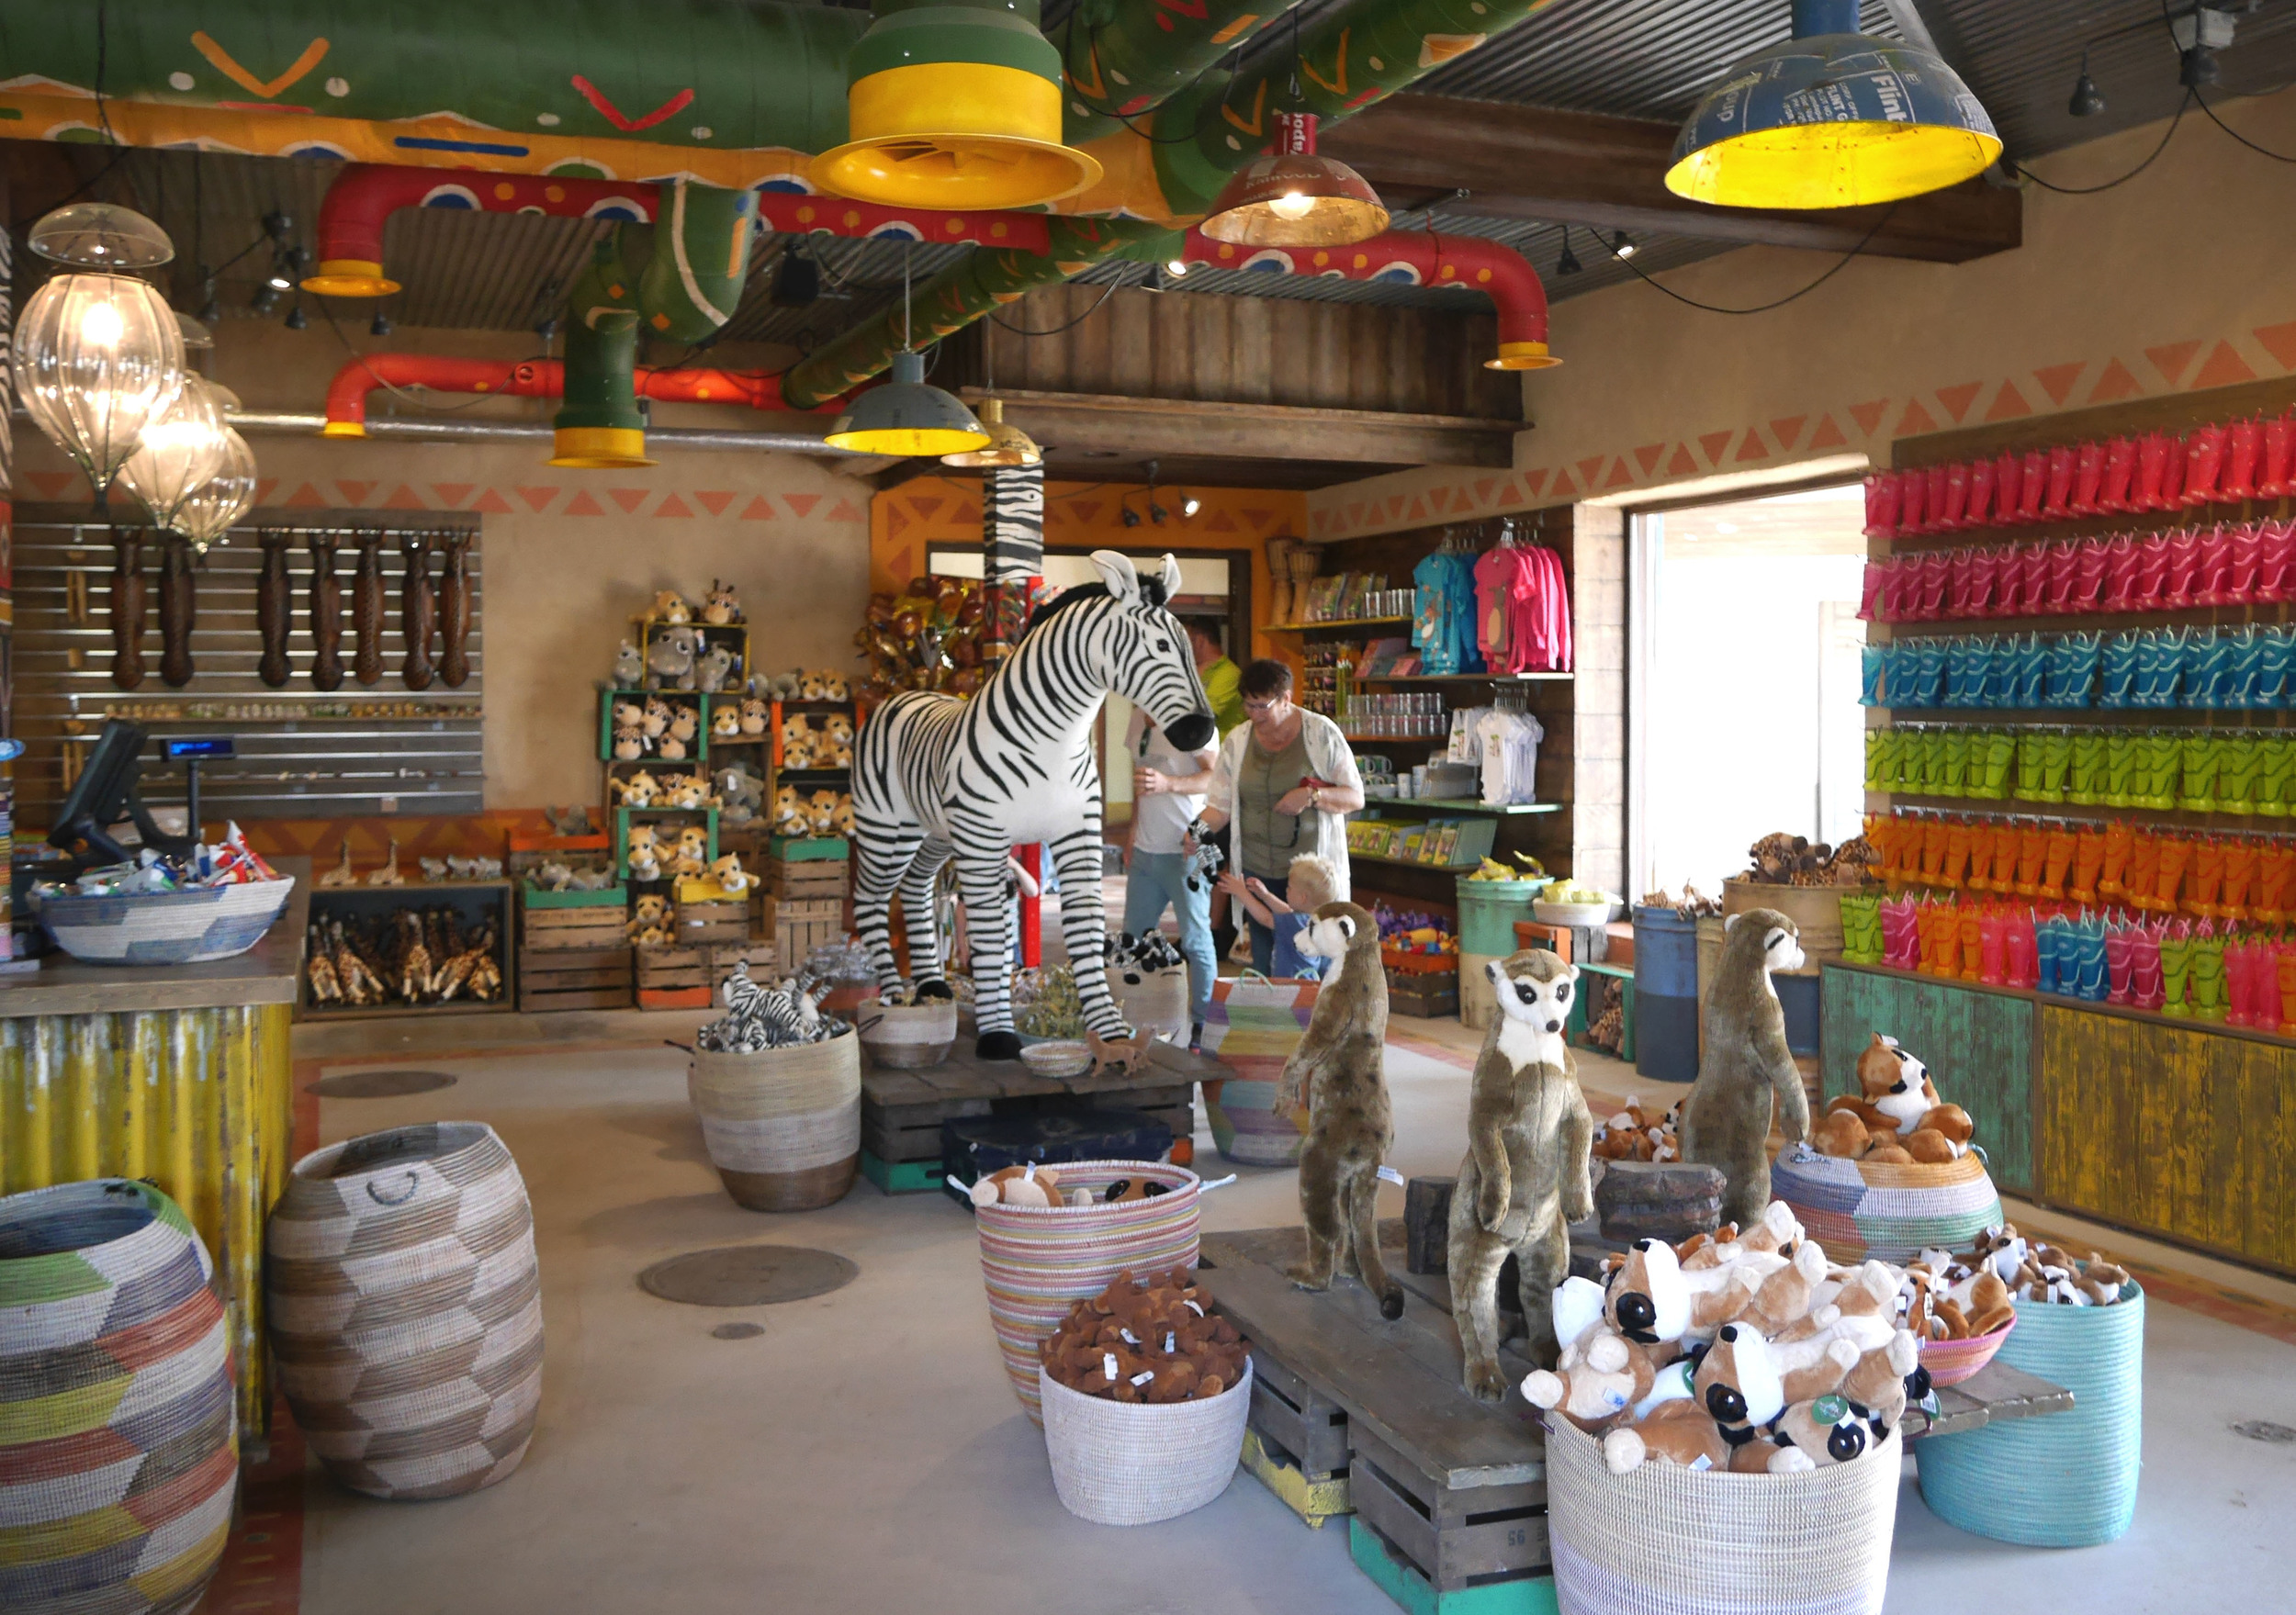 ASANTE GIFTS WILDLANDS <strong>| An authentic yet whimsical shop you might almost encounter in a real-life African village.</strong>